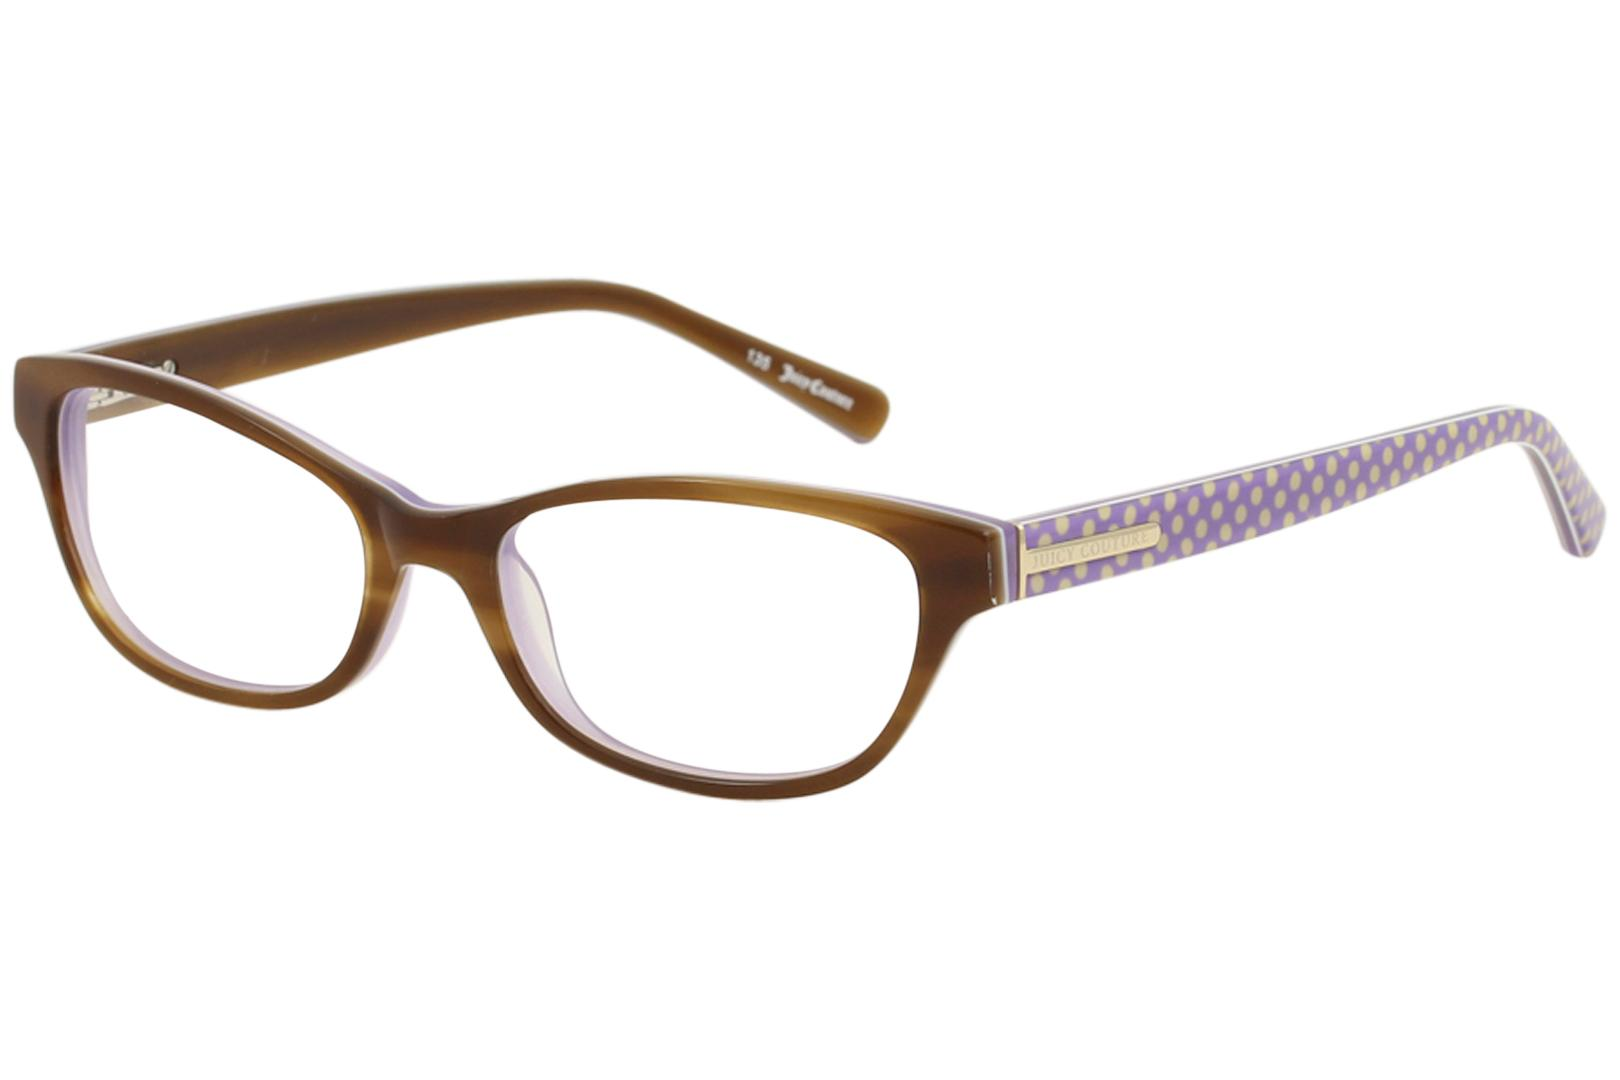 Image of Juicy Couture Women's Eyeglasses JU118 JU/118 Full Rim Optical Frame - Blonde Lavender   0ERL - Lens 51 Bridge 16 Temple 135mm